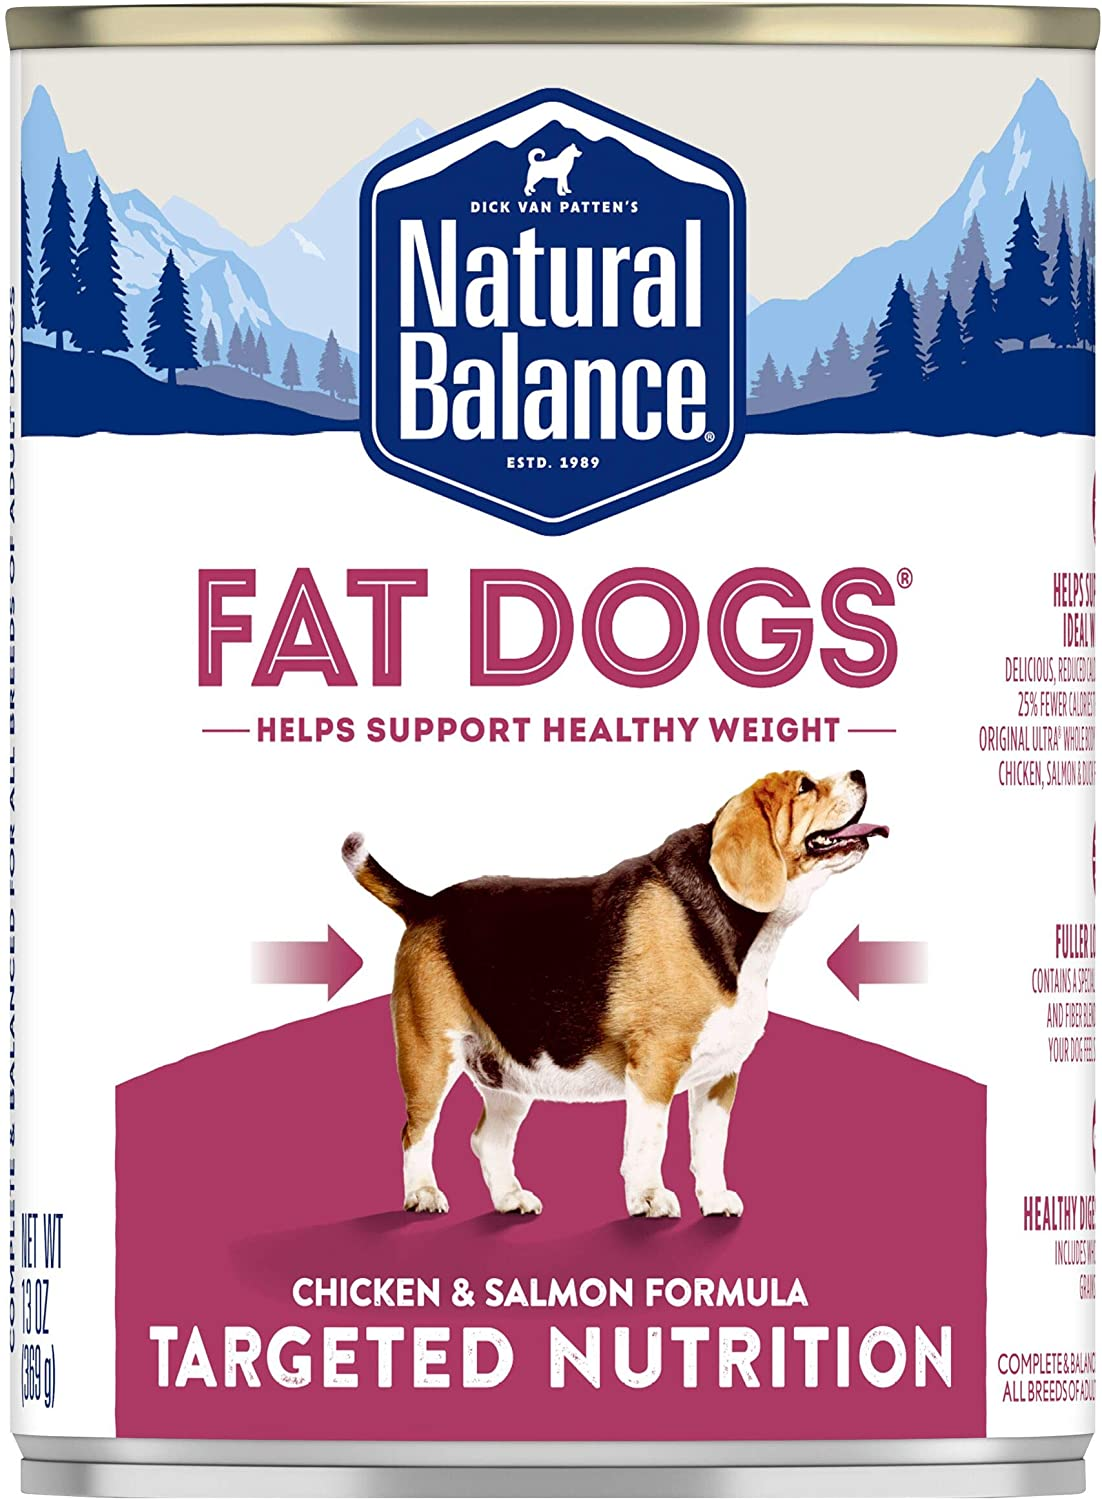 Natural Balance Targeted Nutrition Wet Dog Food, 13 Ounce (Pack of 12)